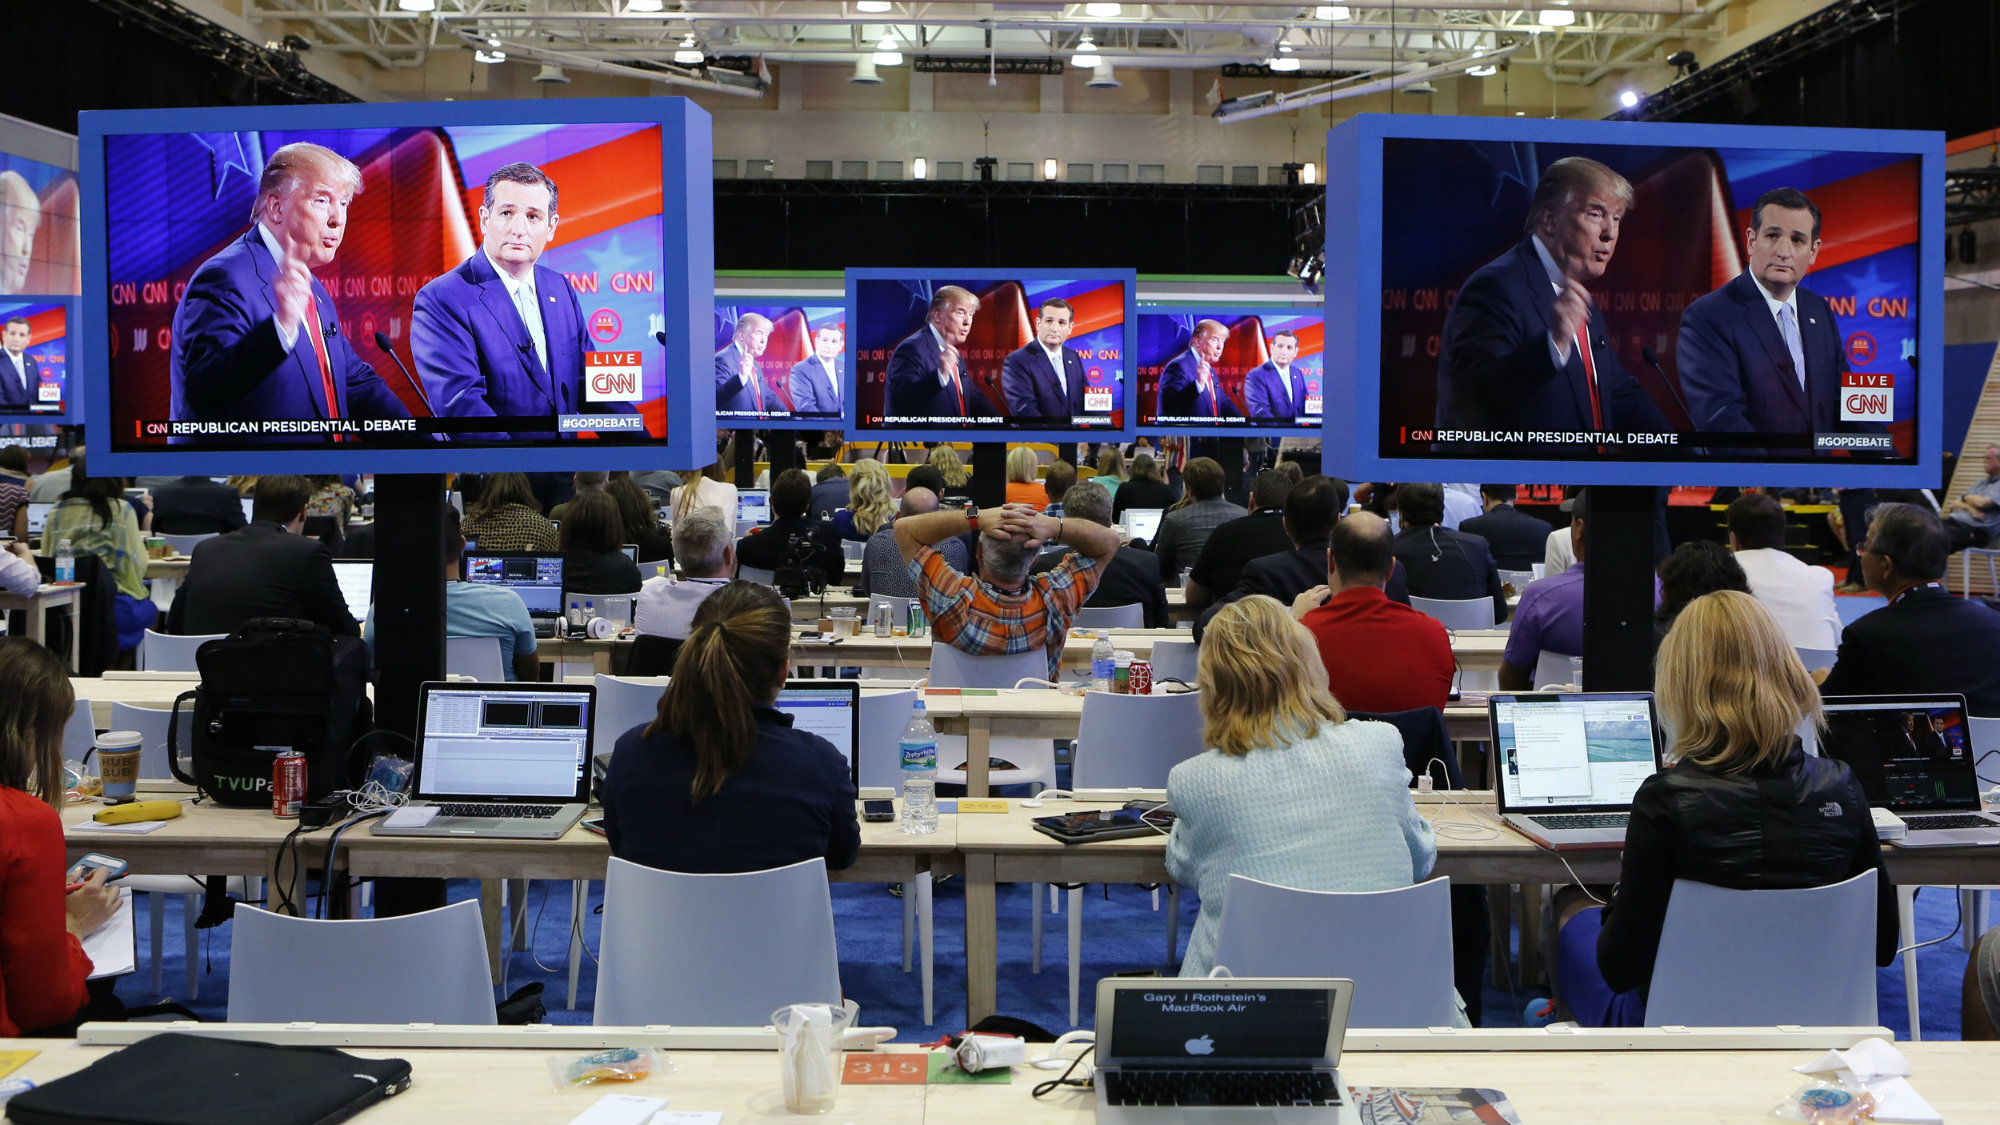 Journalists watch Republican U.S. presidential candidates Donald Trump (L) and Ted Cruz debate on large video monitors in the media filing center during the Republican U.S. presidential candidates debate sponsored by CNN at the University of Miami in Miami, Florida March 10, 2016.